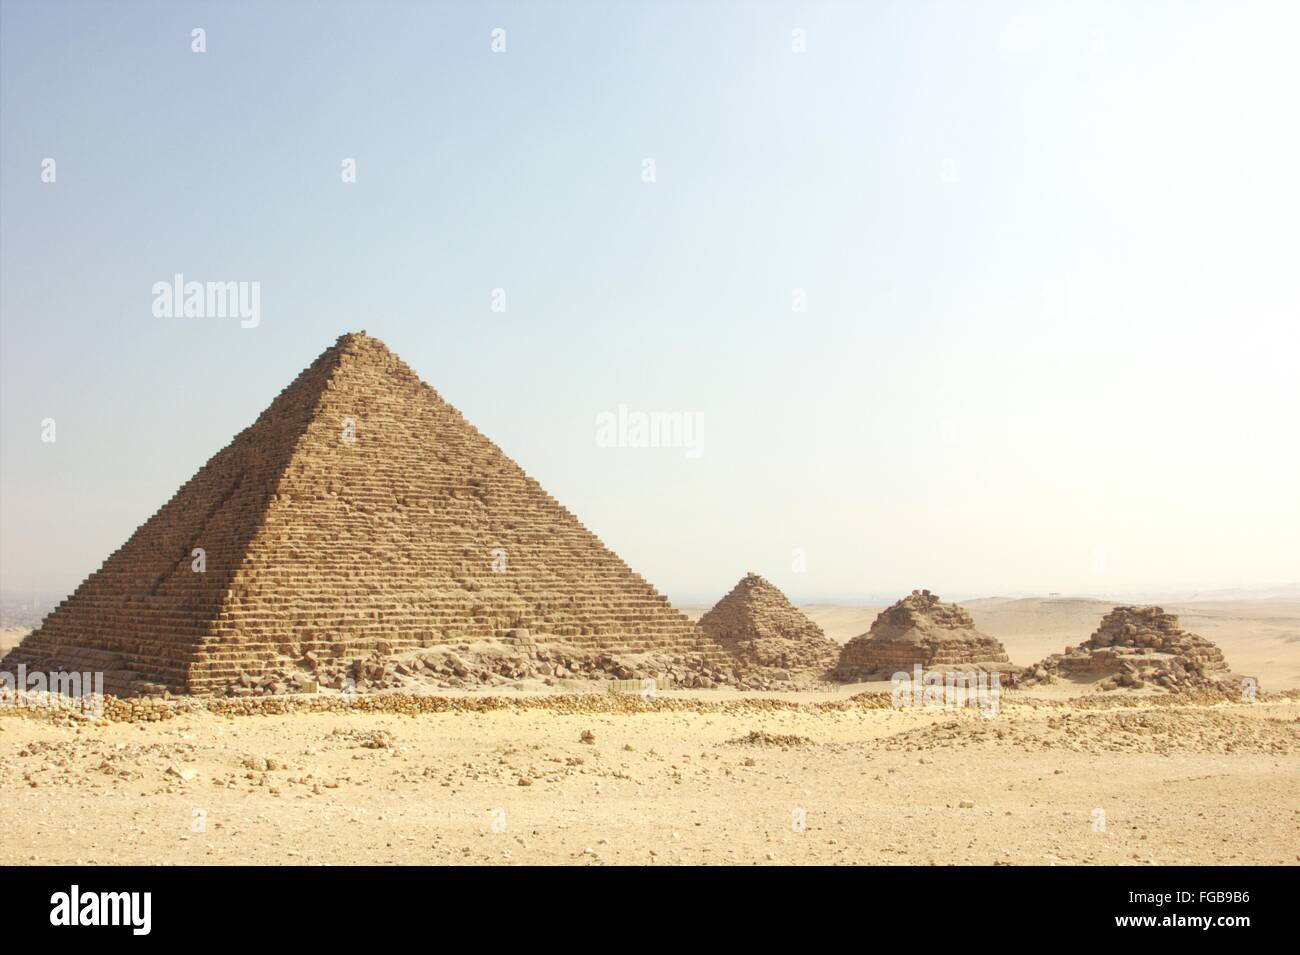 View Of Pyramids At Desert - Stock Image